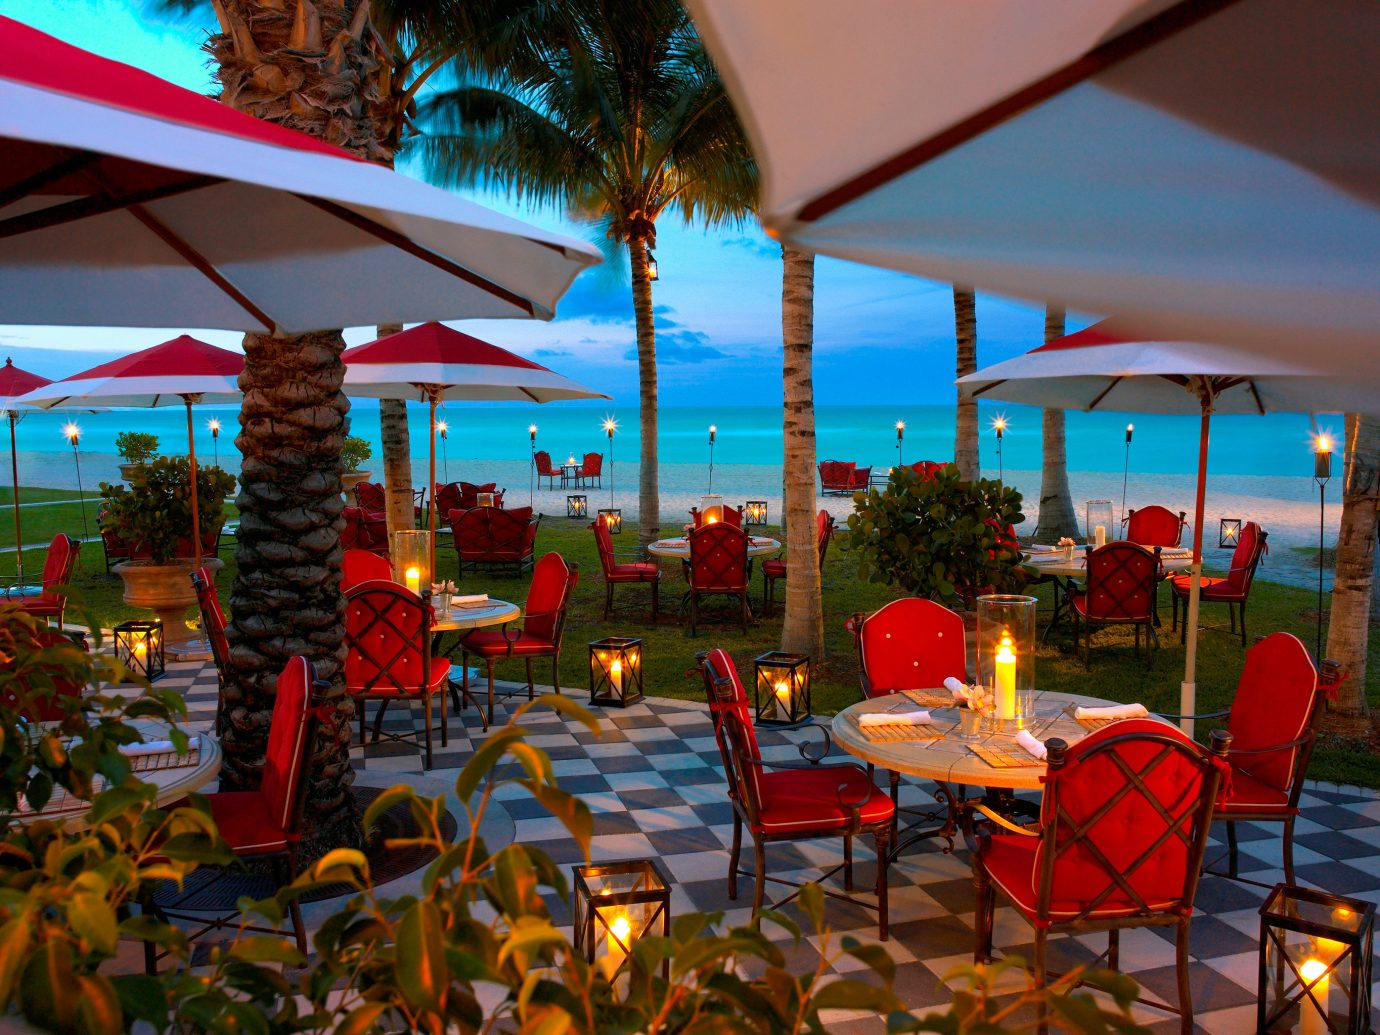 Beachfront Courtyard Dining Drink Eat Honeymoon Hotels Patio Romance Scenic views Terrace Waterfront umbrella chair outdoor Resort restaurant lawn vacation meal colorful set furniture several